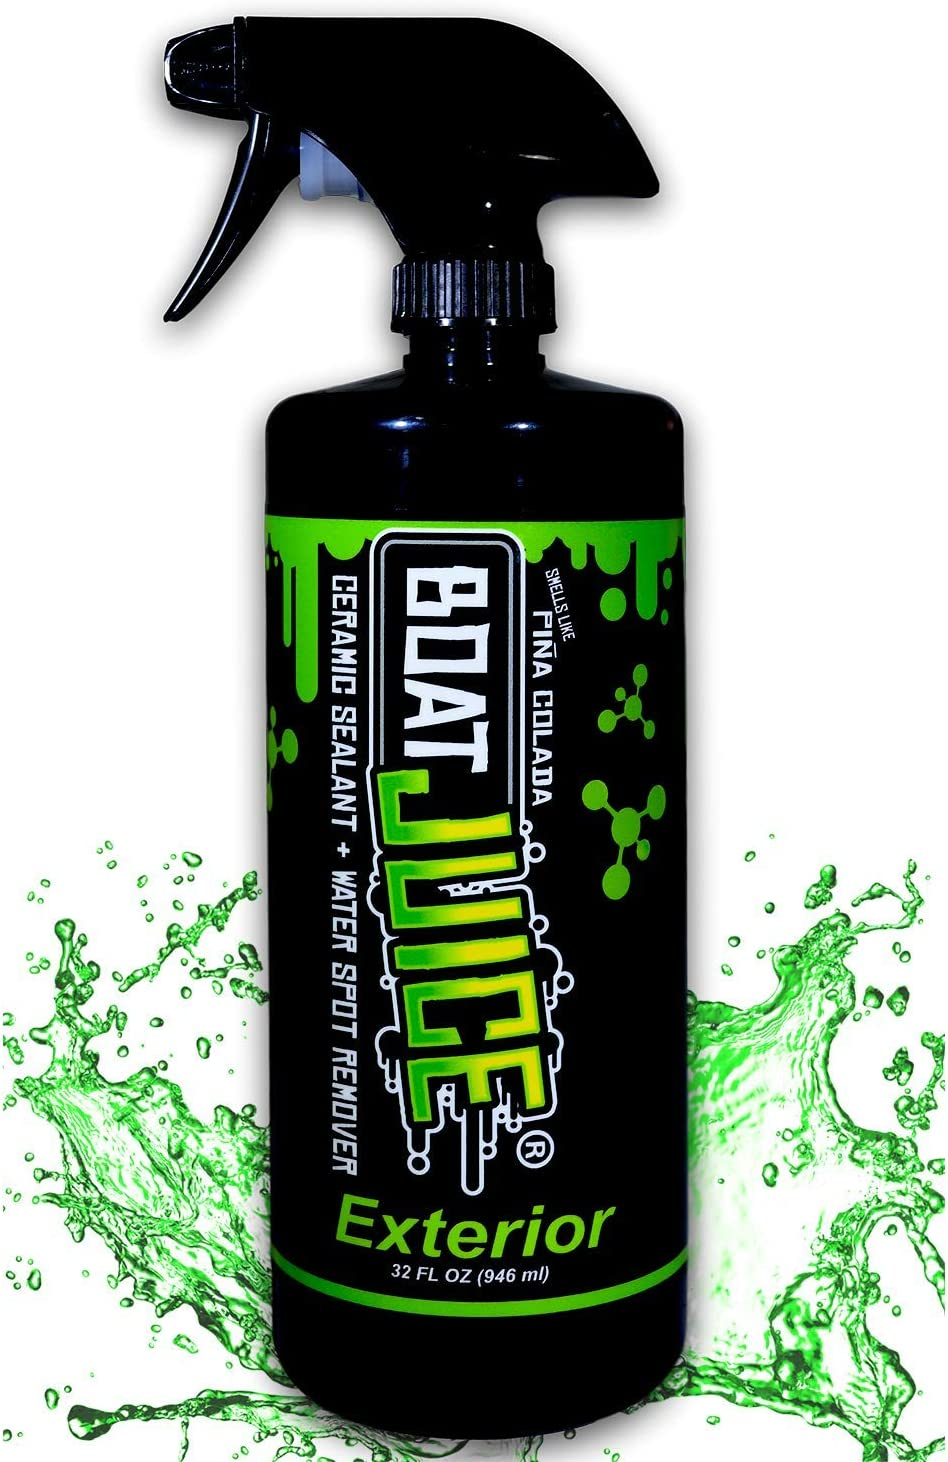 Boat Juice - Exterior Cleaner - Ceramic SiO2 Sealant - Water Spot Remover - Gloss Enhancer - Pina Colada Scent - 32oz Sprayer Bottle